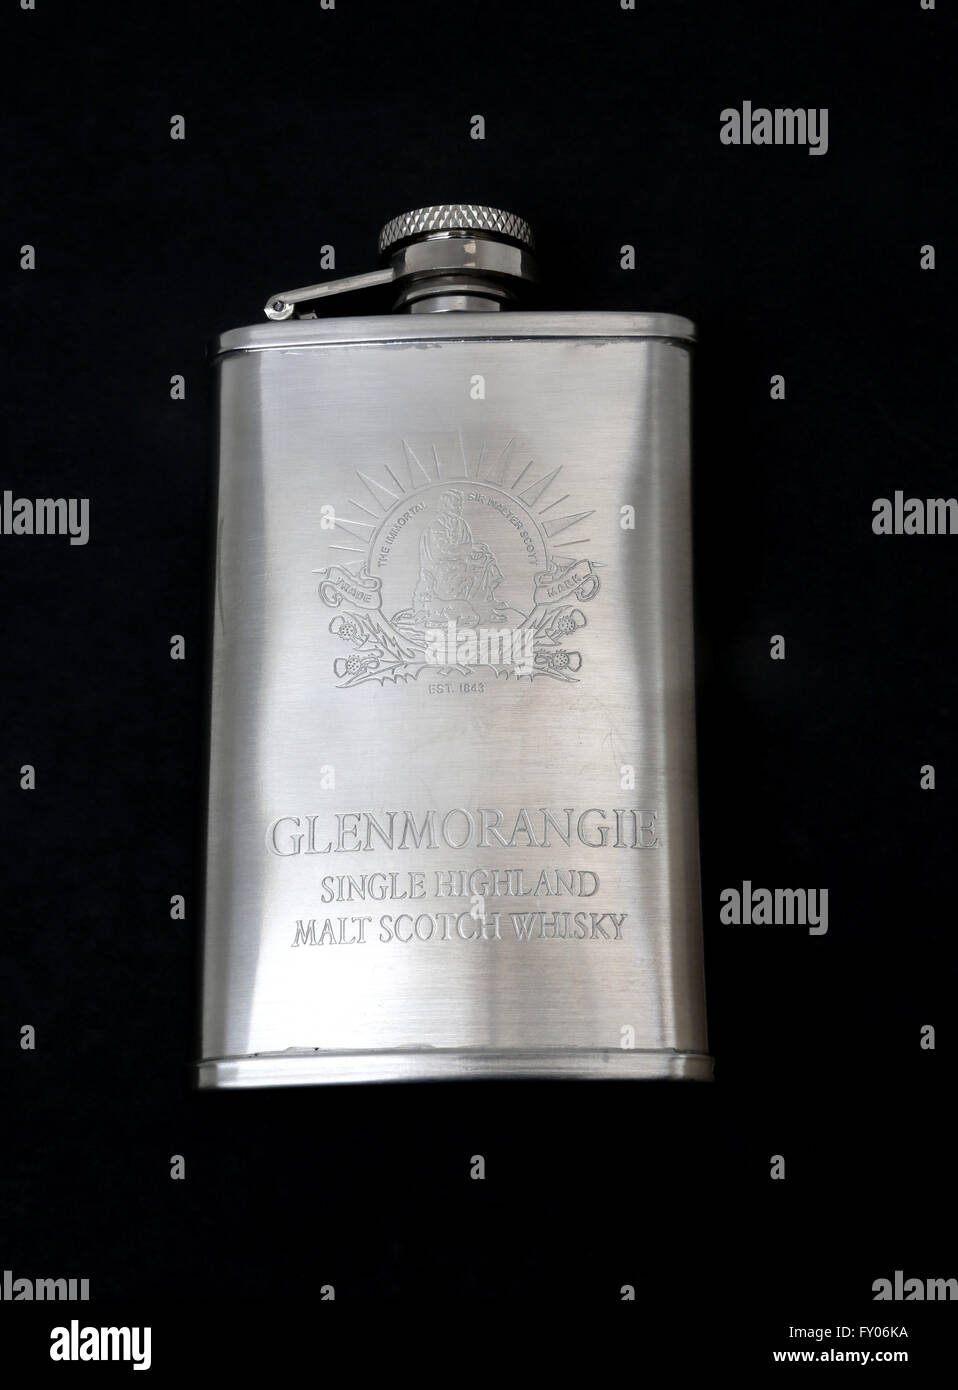 Stainless Steel Glenmorangie Single Highland Malt Scotch Whisky Hip Flask With Engraving Of Sir Walter Scott - Stock Image